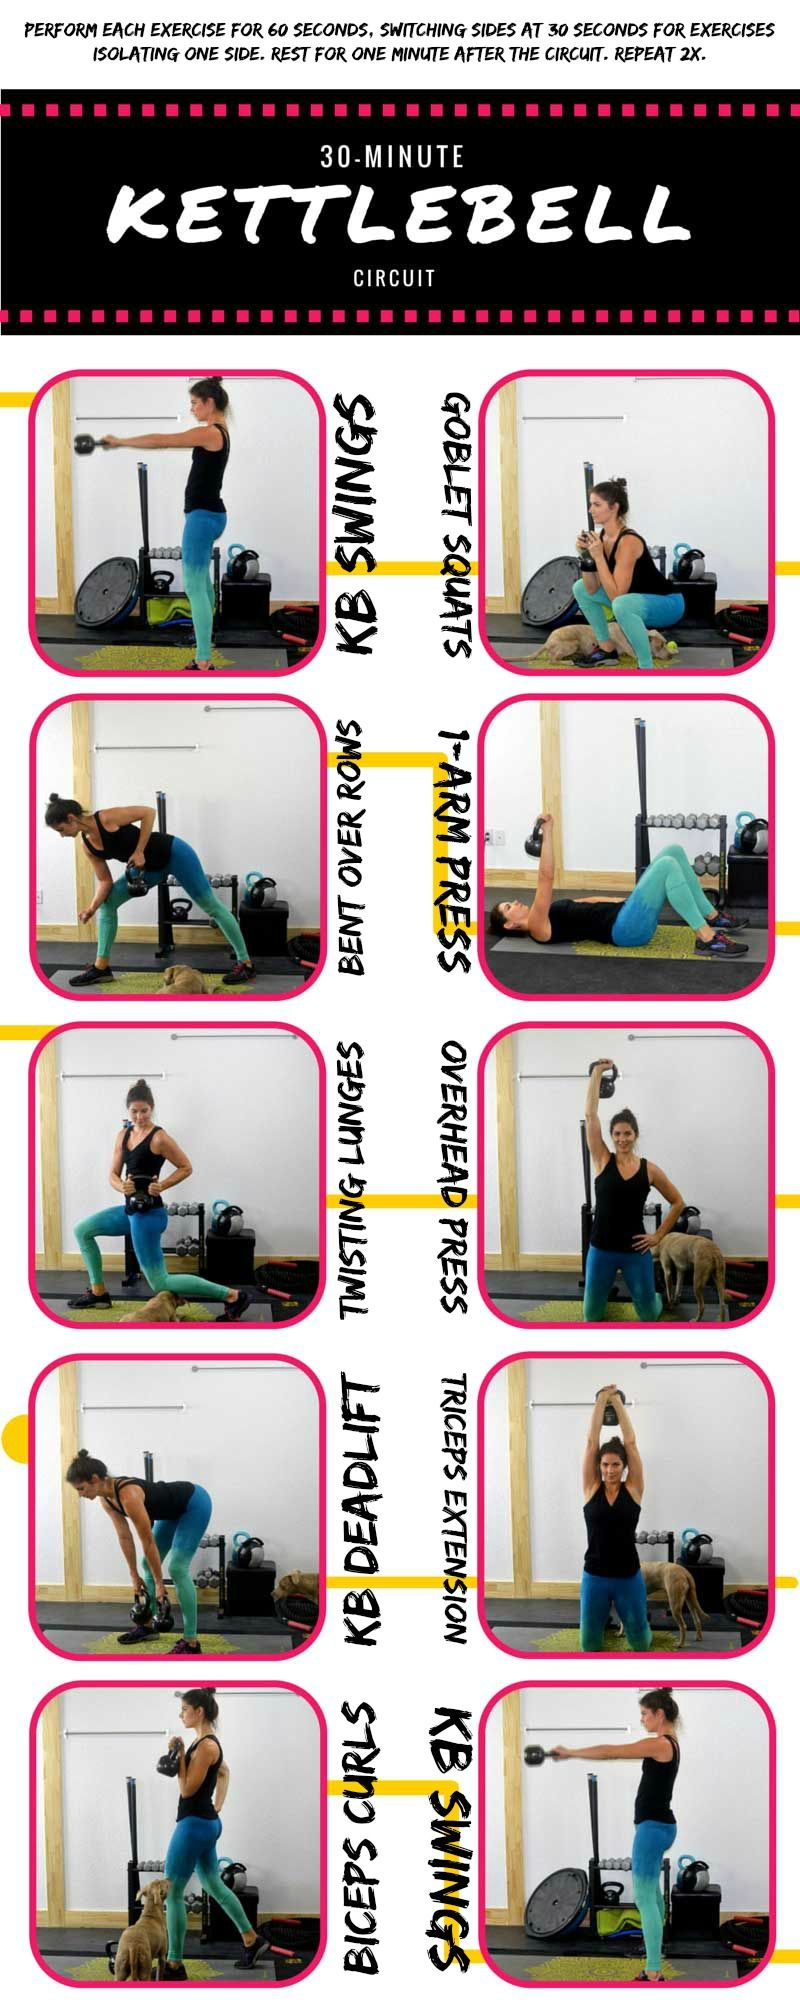 30 Minute full-body kettlebell circuit workout | Exercises ...